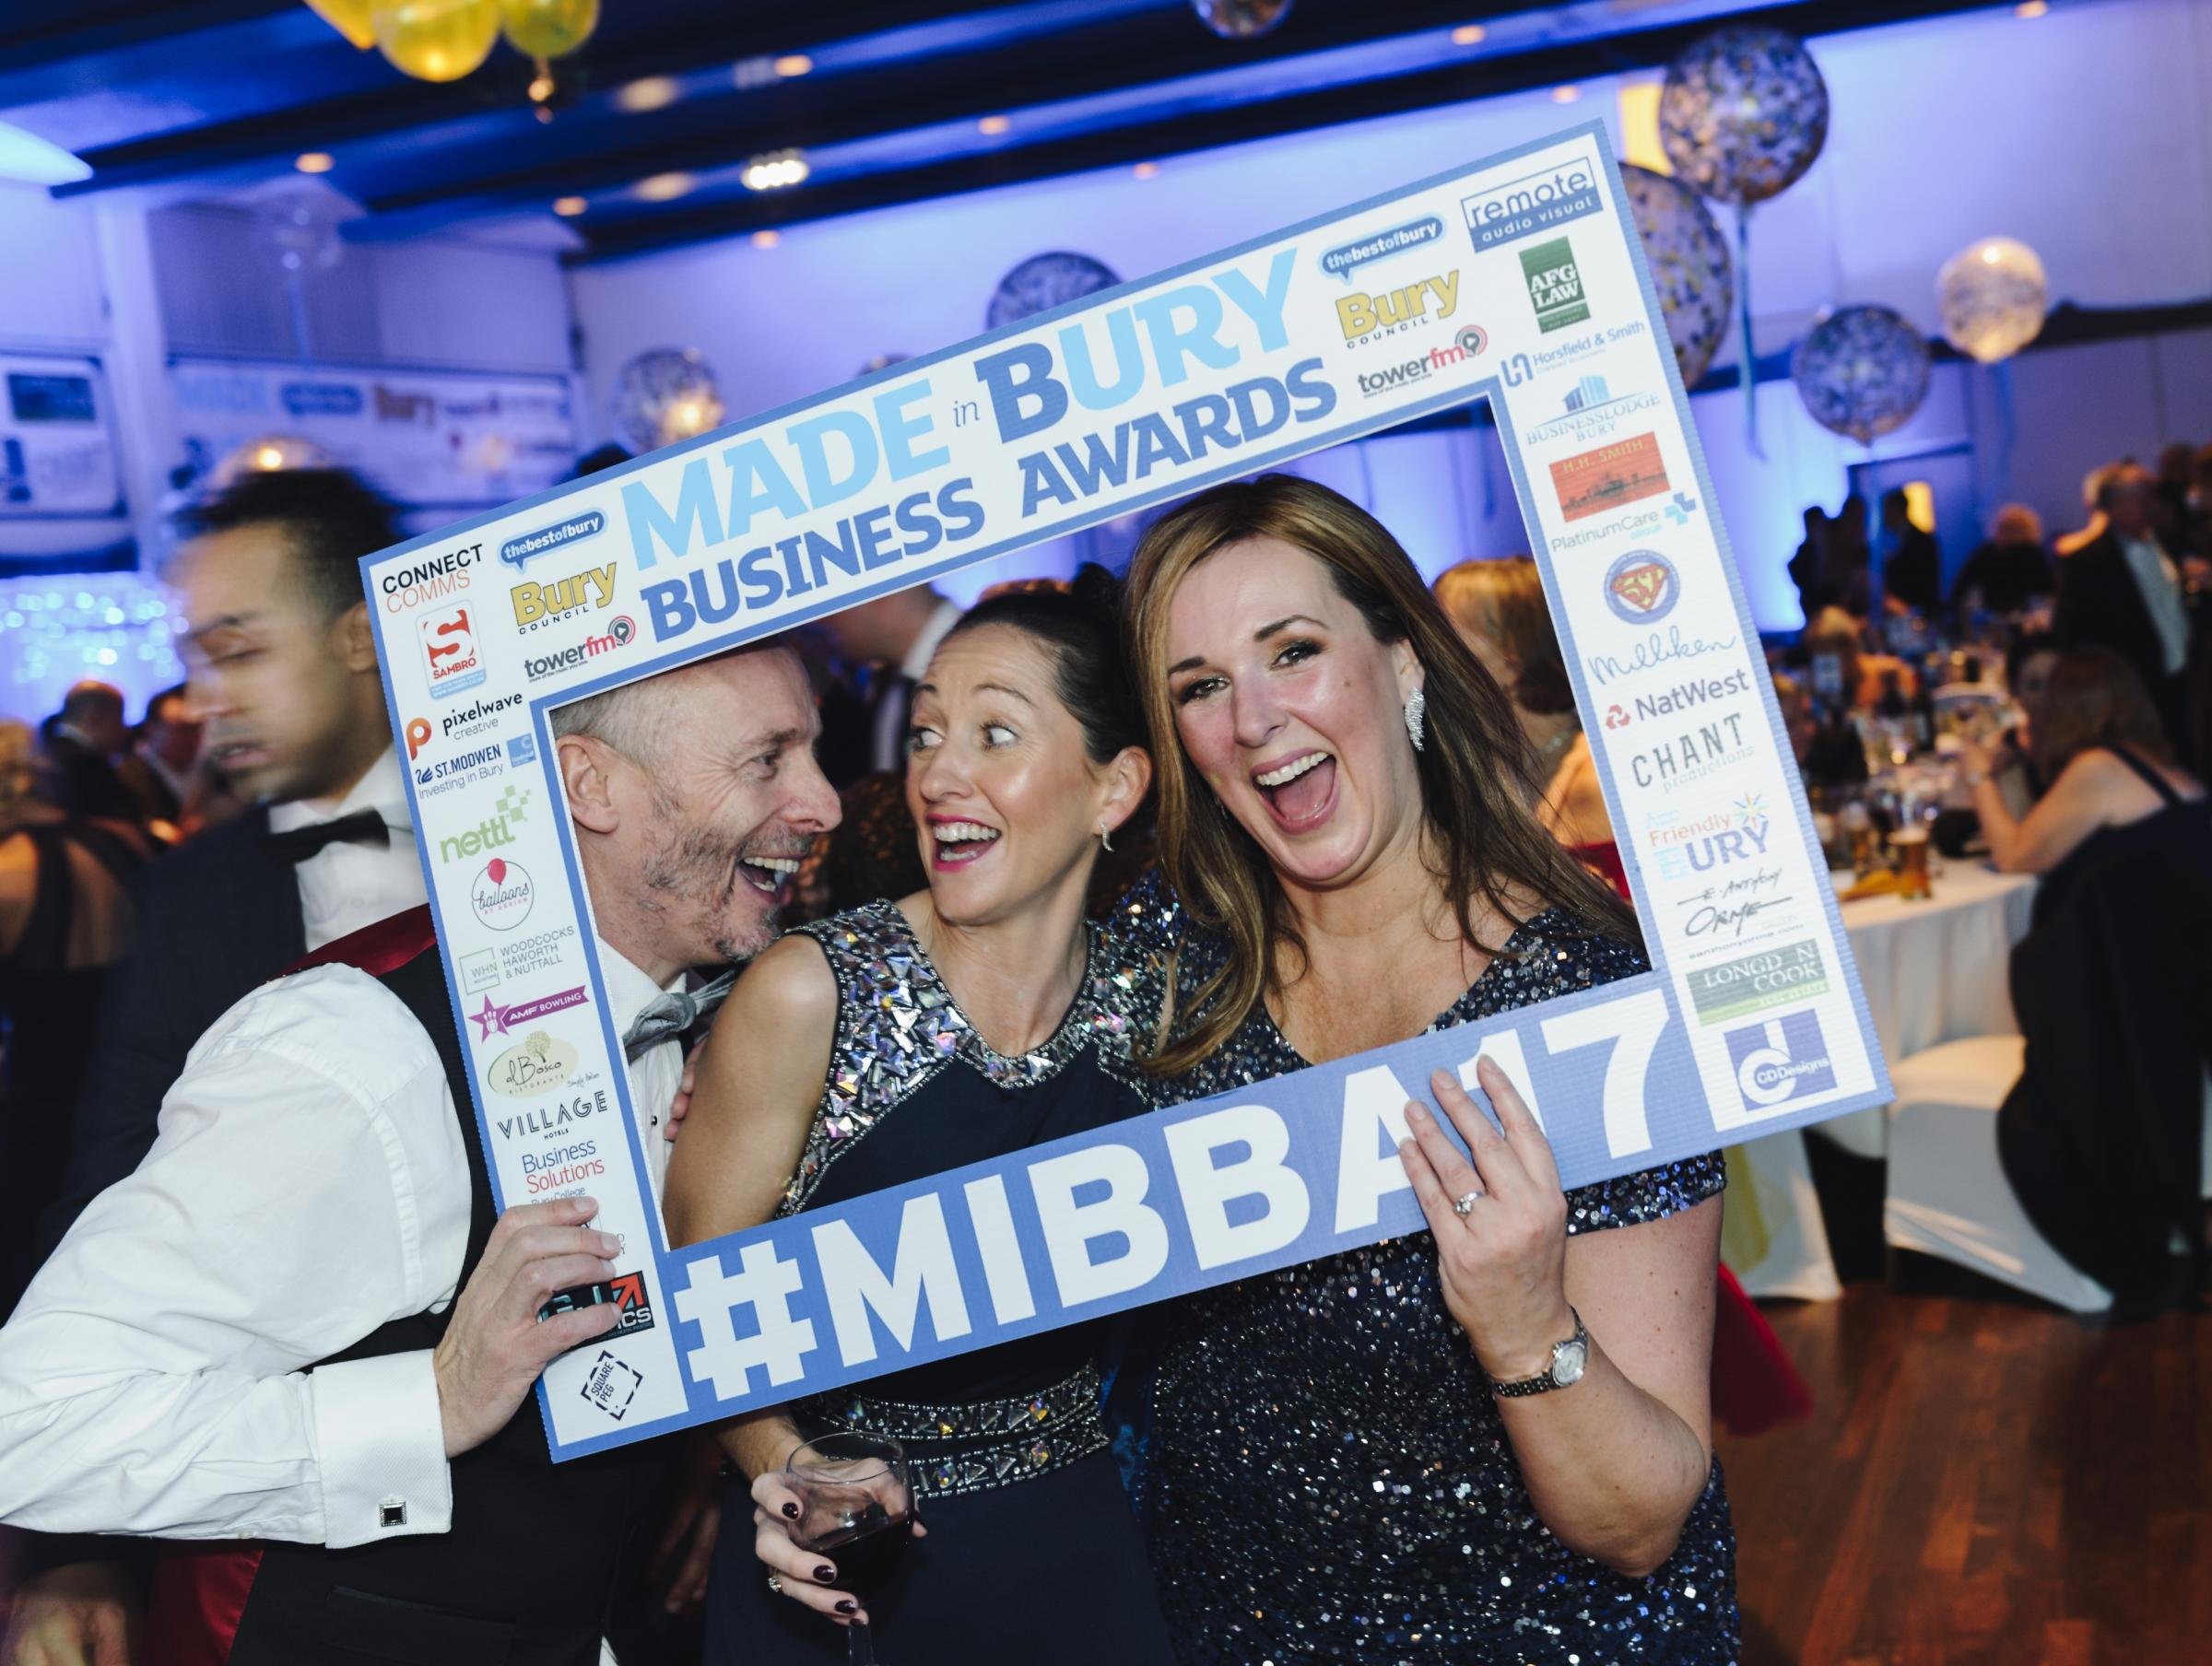 Get ready to find out who won in The Made in Bury Business Awards